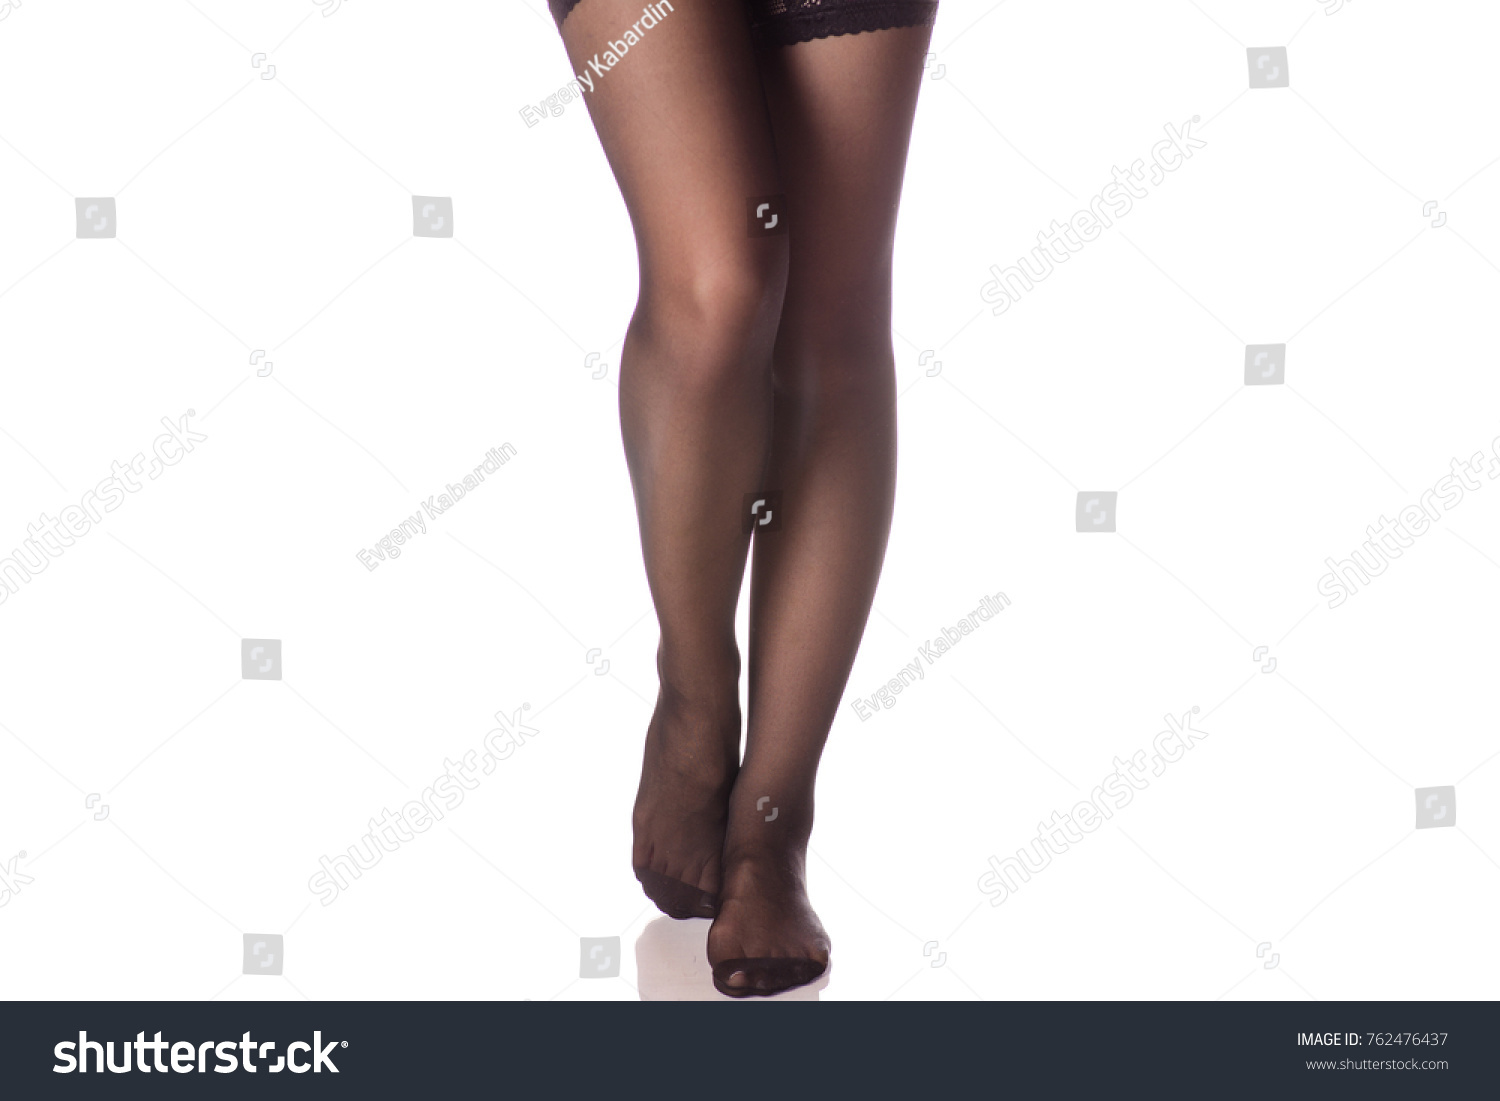 543d2a8622f Female legs black stockings tights on white background isolation